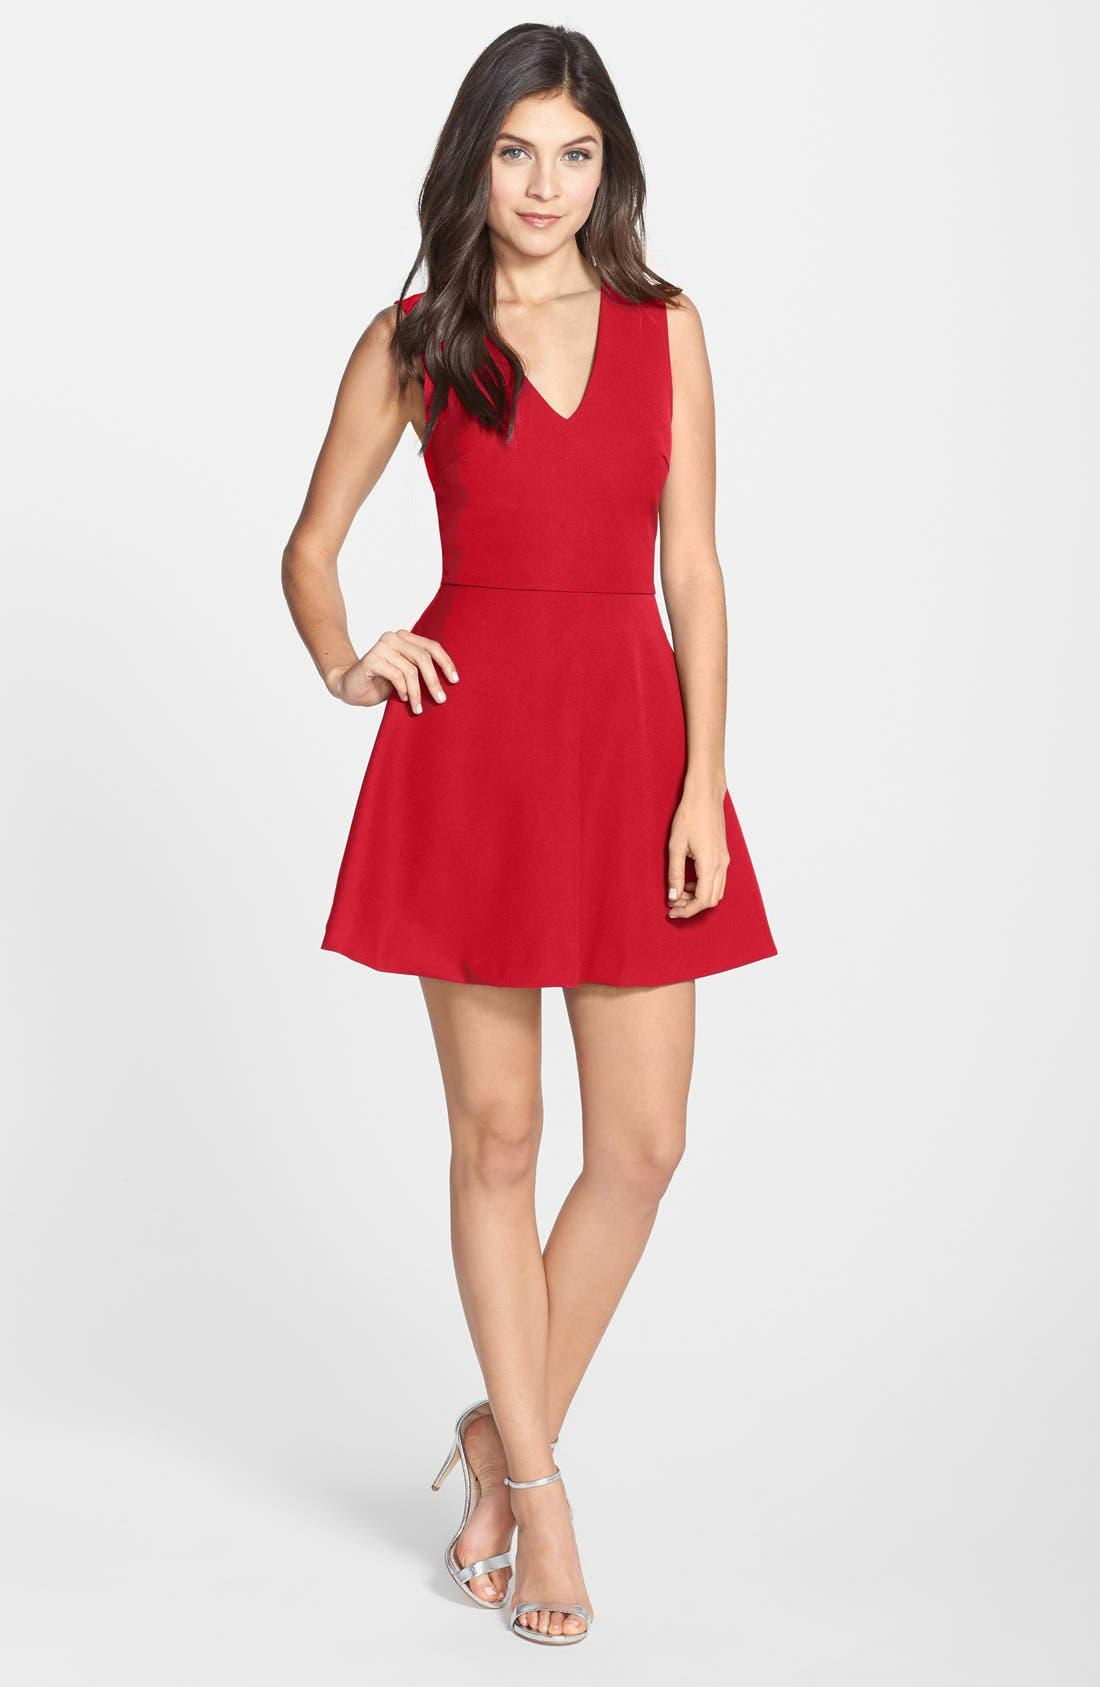 Main Image - Felicity & Coco Bianca Back Cutout Fit & Flare Dress (Regular & Petite) (Nordstrom Exclusive)